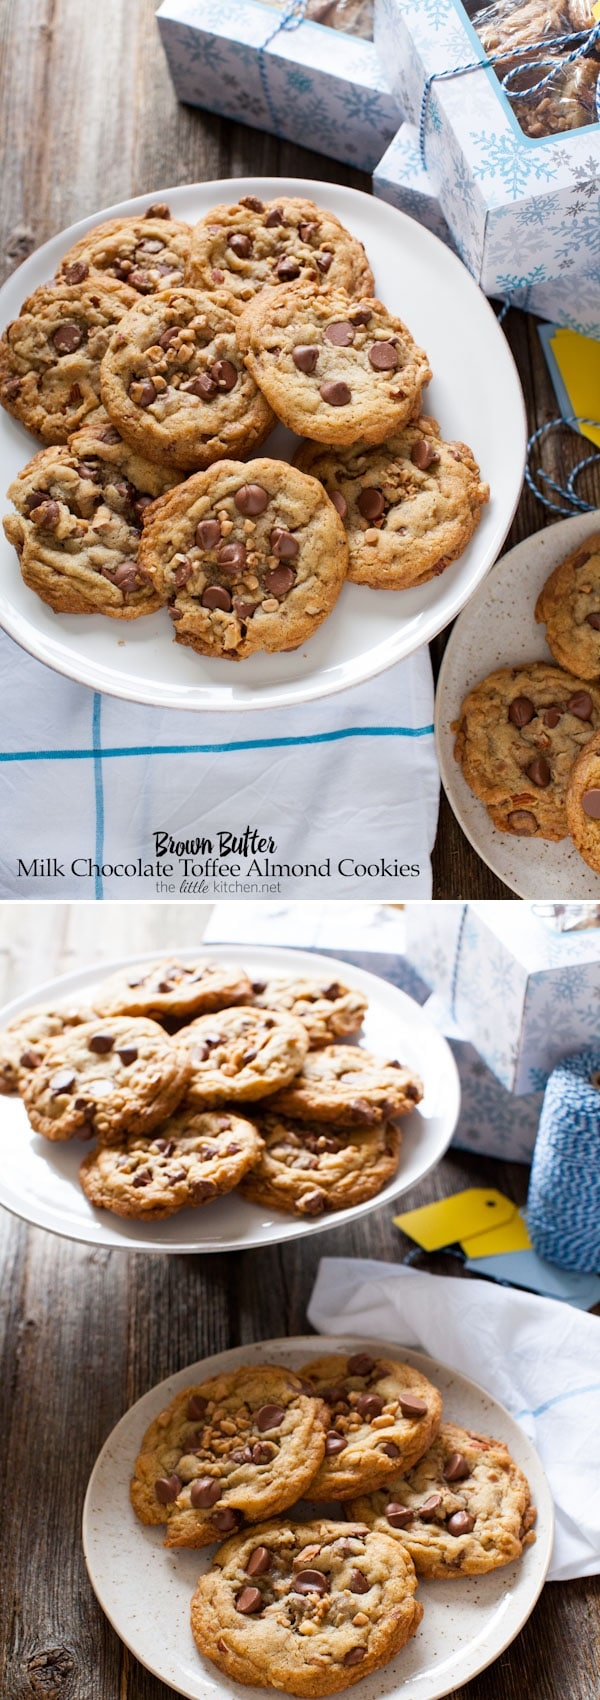 Brown Butter Milk Chocolate Toffee Almond Cookies from thelittlekitchen.net